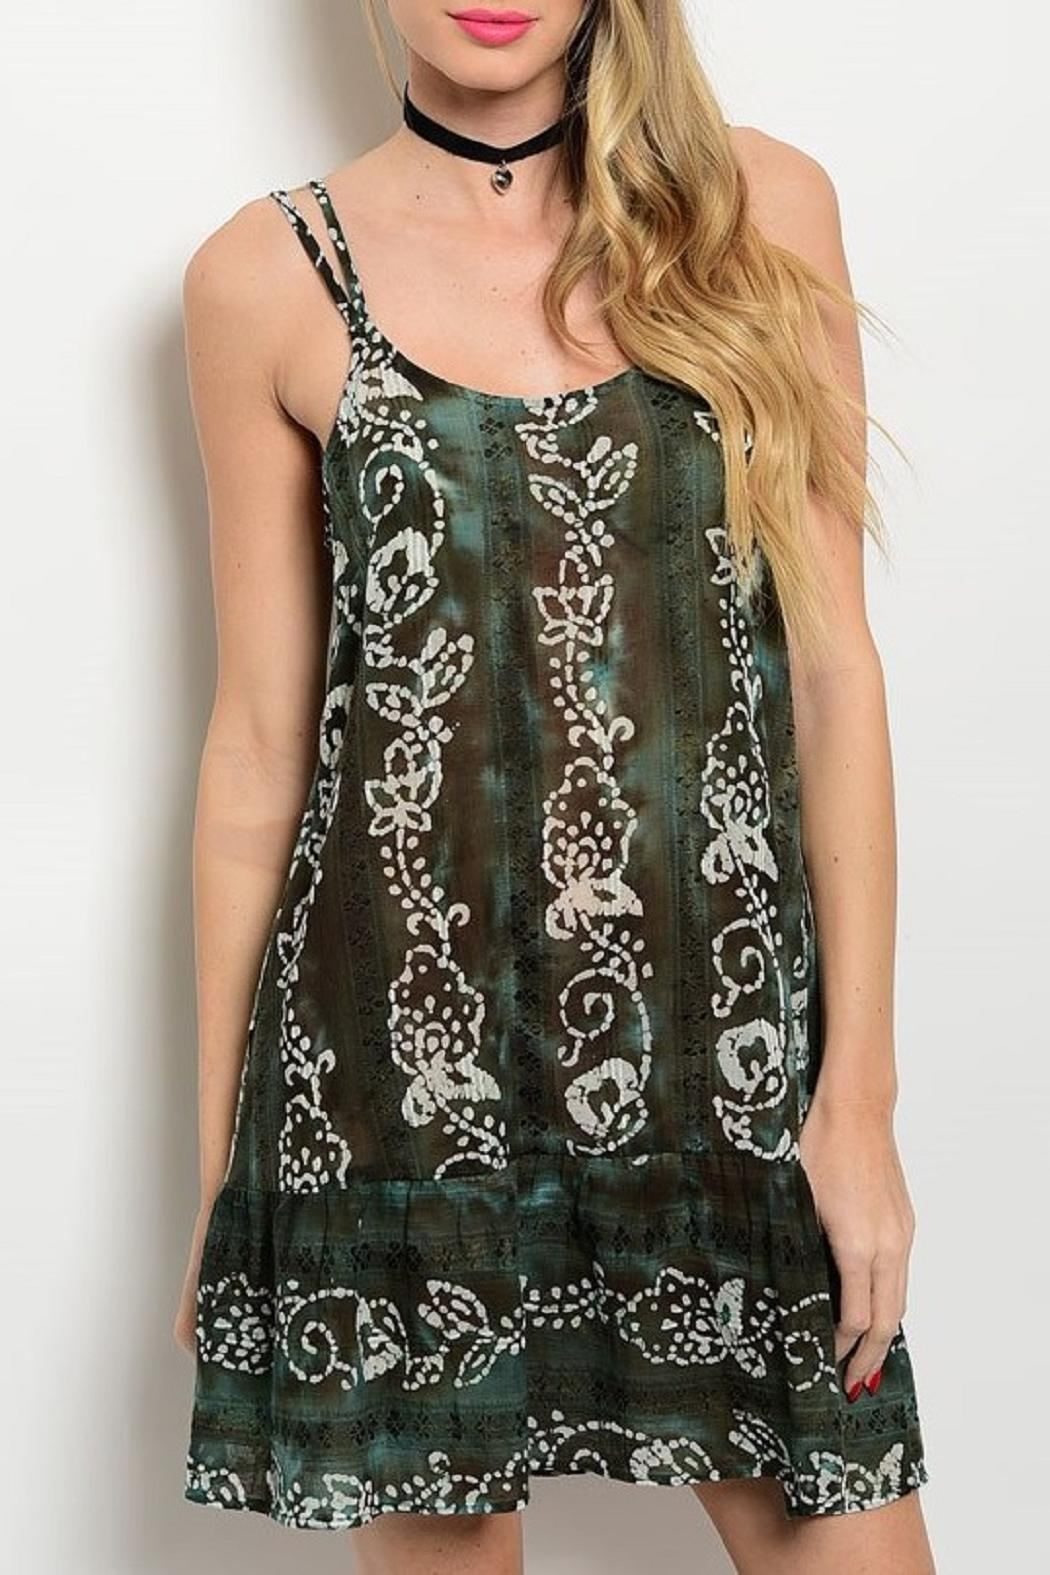 Adore Clothes & More Olive Brown Summer Dress - Main Image